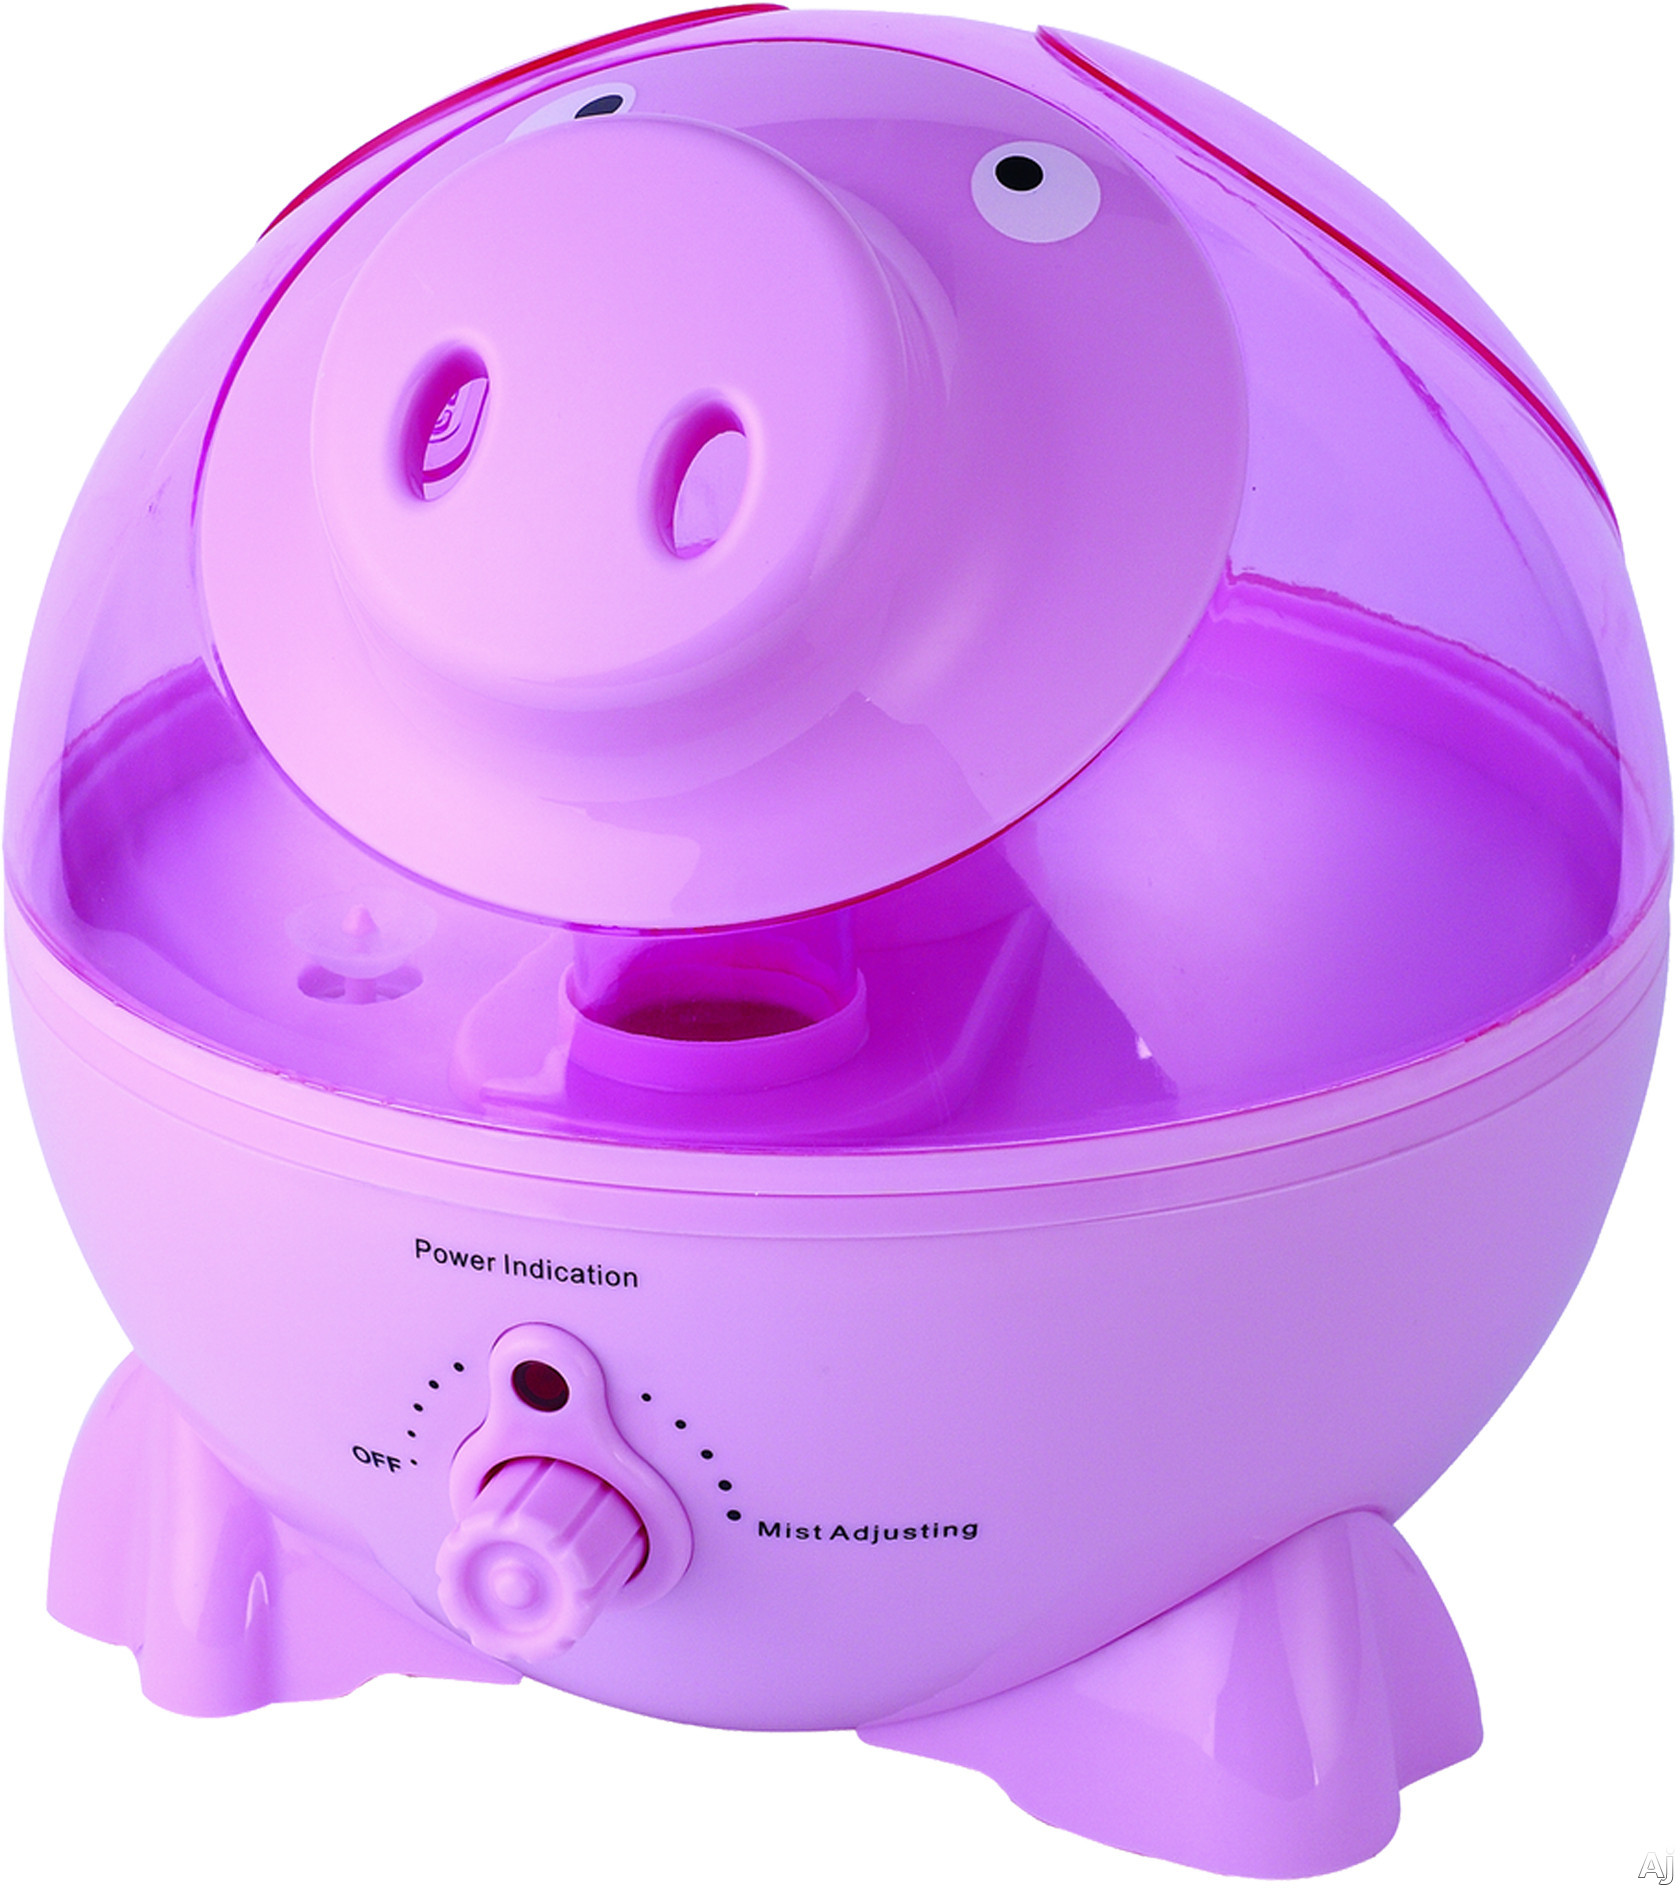 Evaporative Air Cooler with Humidifier Rotary Knob Controls: Pink Pig #770047